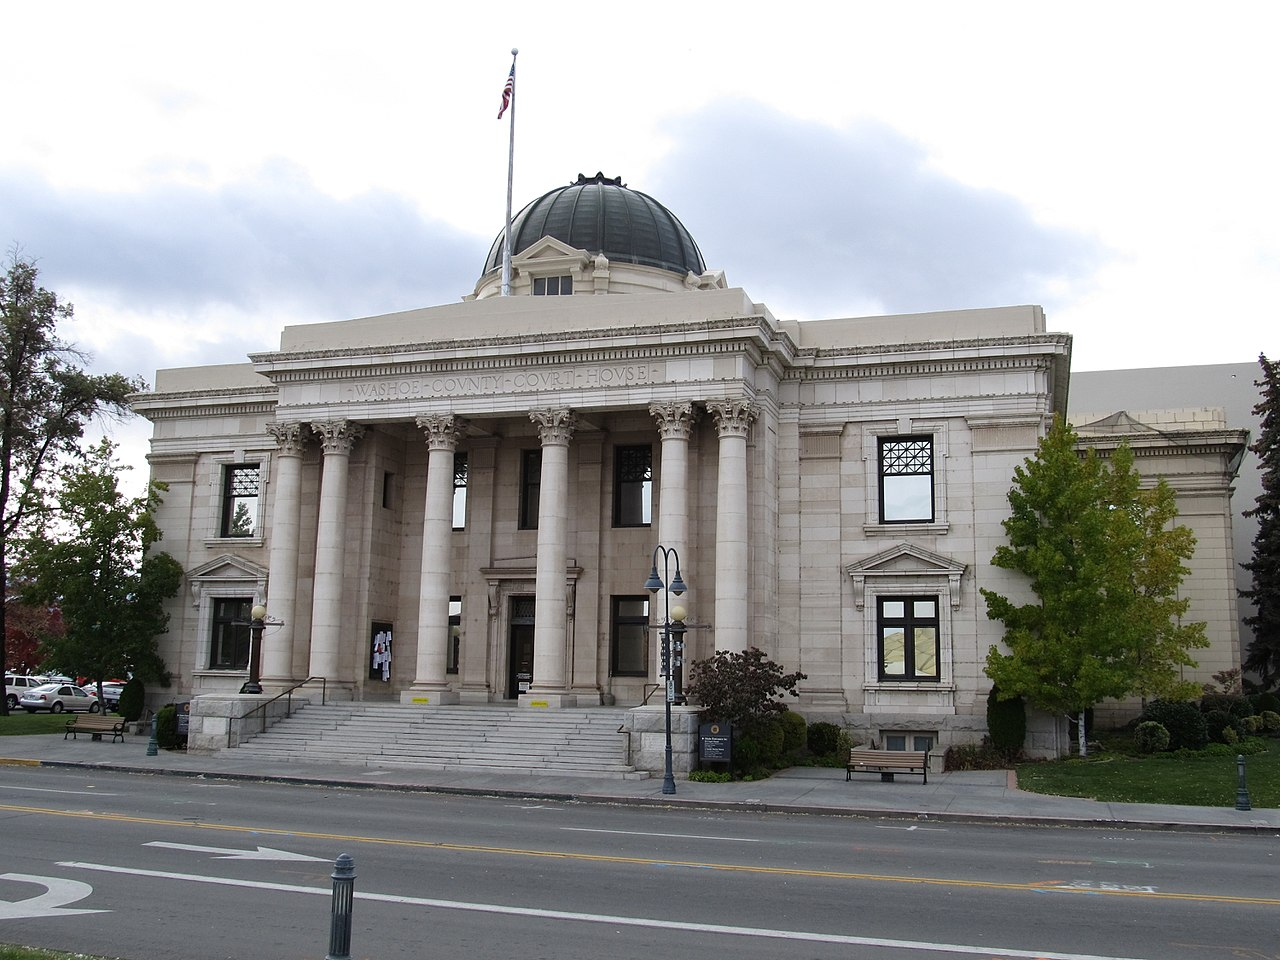 The Washoe Country Courthouse was built in 1911 and was the site of tens of thousands of divorces in the early 20th century.